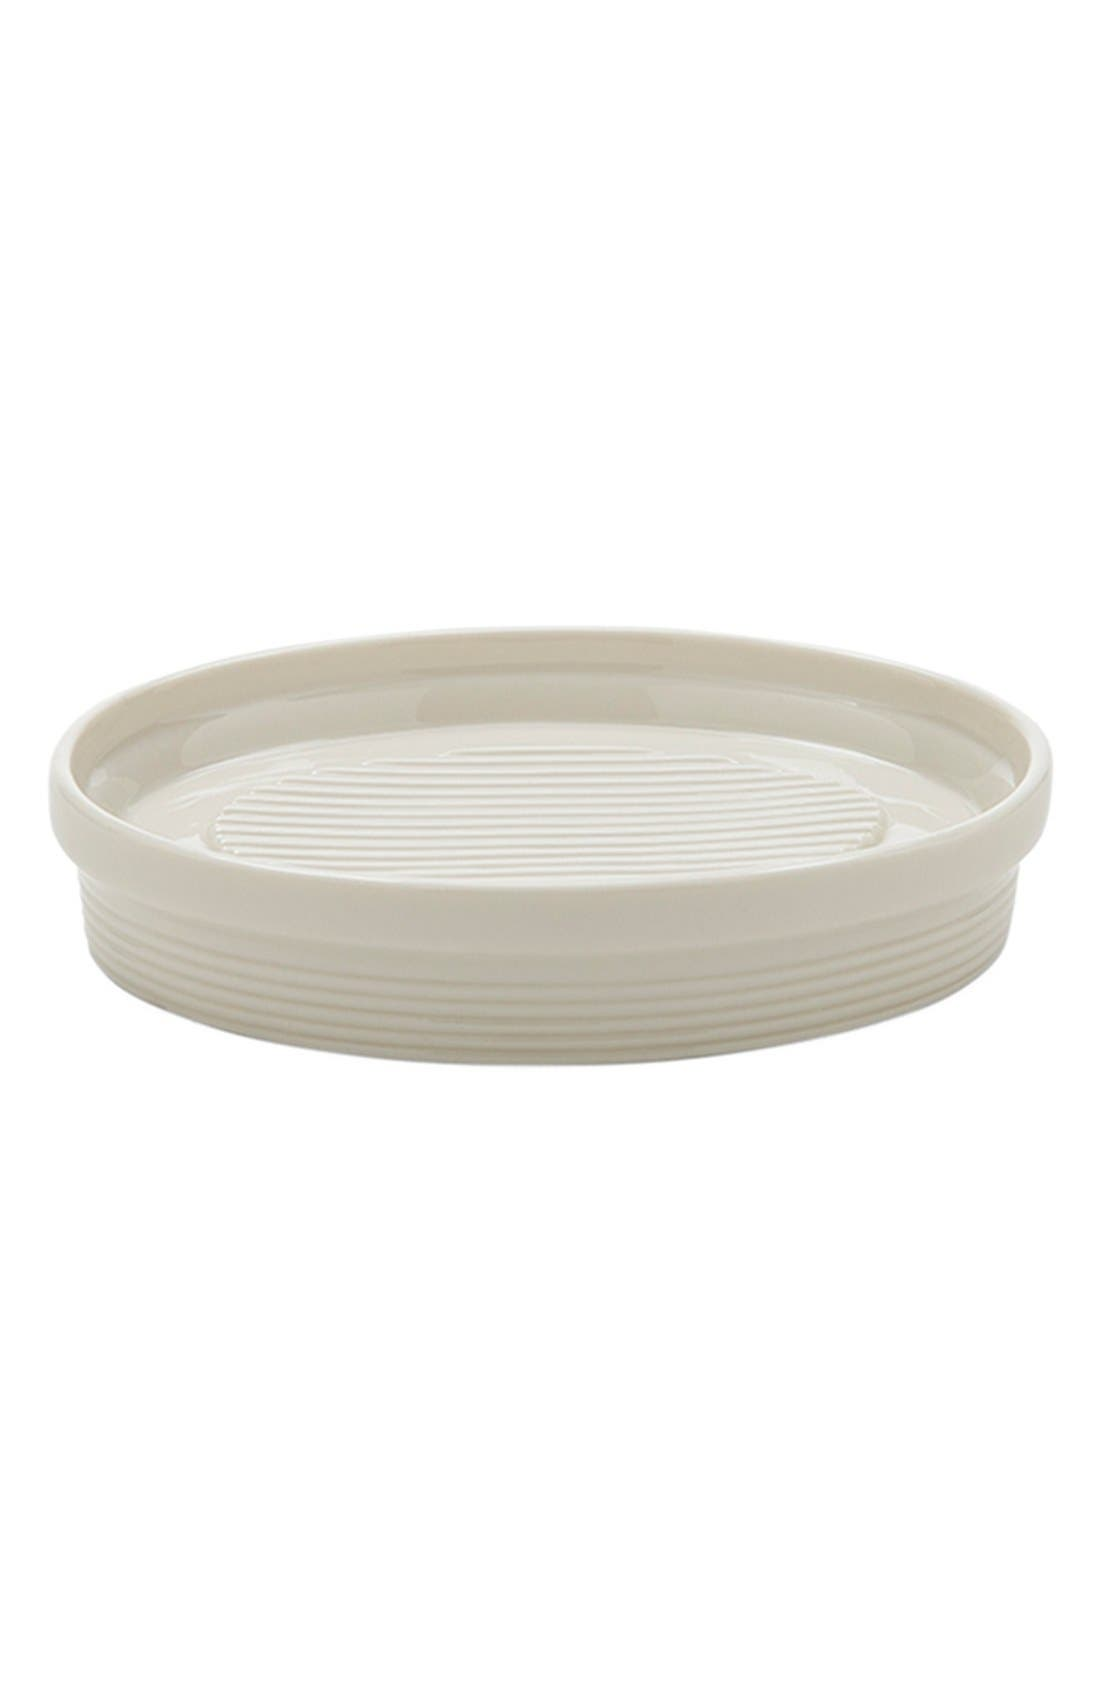 Waterworks 'Earth' Porcelain Soap Dish (Online Only)